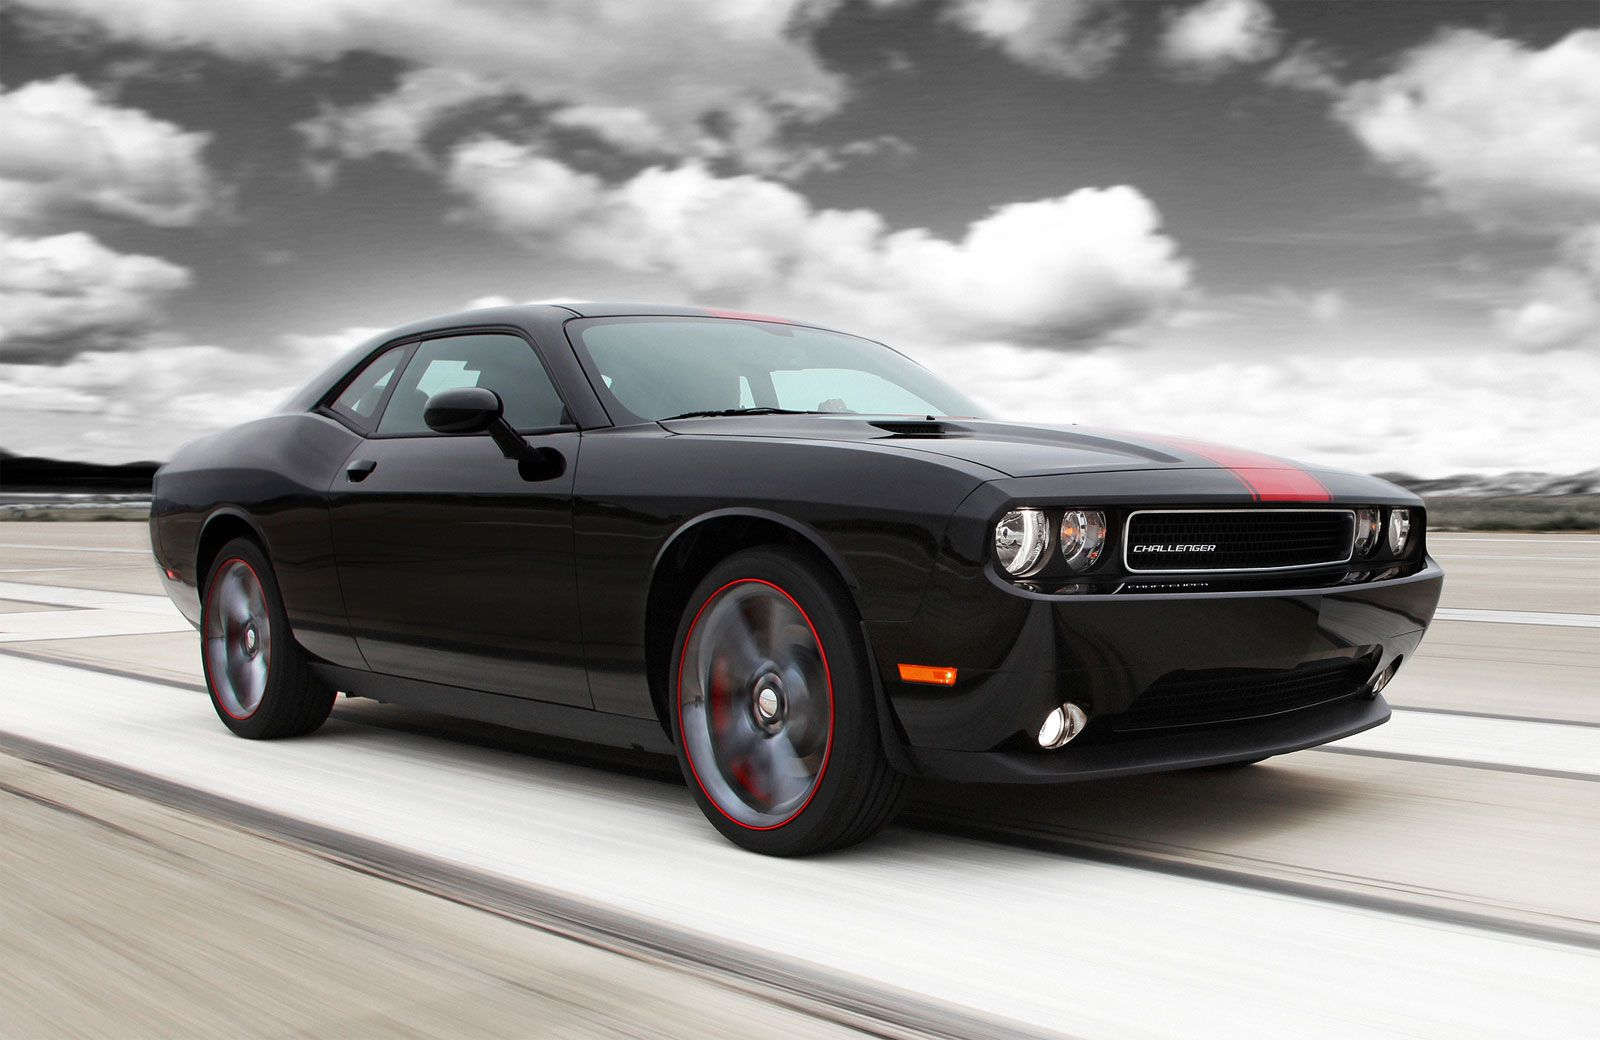 Dodge car wallpapers page hd car wallpapers 1600 1200 dodge challenger backgrounds 40 wallpapers adorable wallpapers wallpapers pinterest dodge